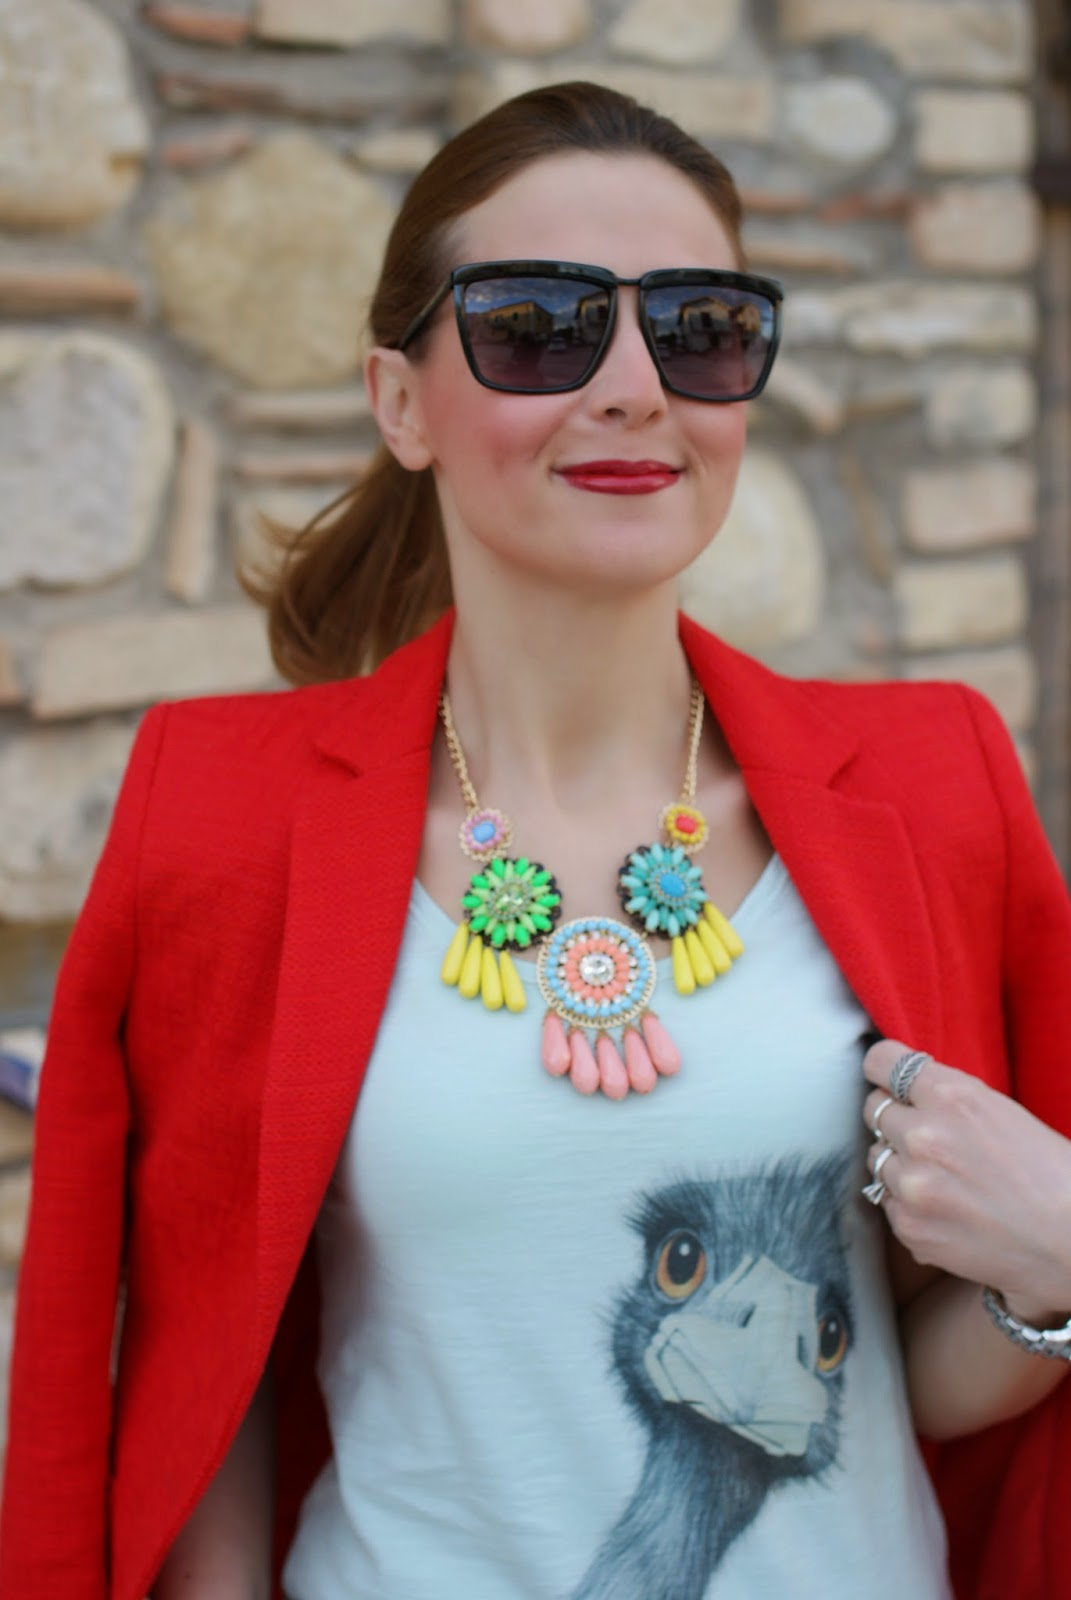 ostrich tee, sister & sister, zara blazer, today i'm me evening clutch, Fashion and Cookies, fashion blogger